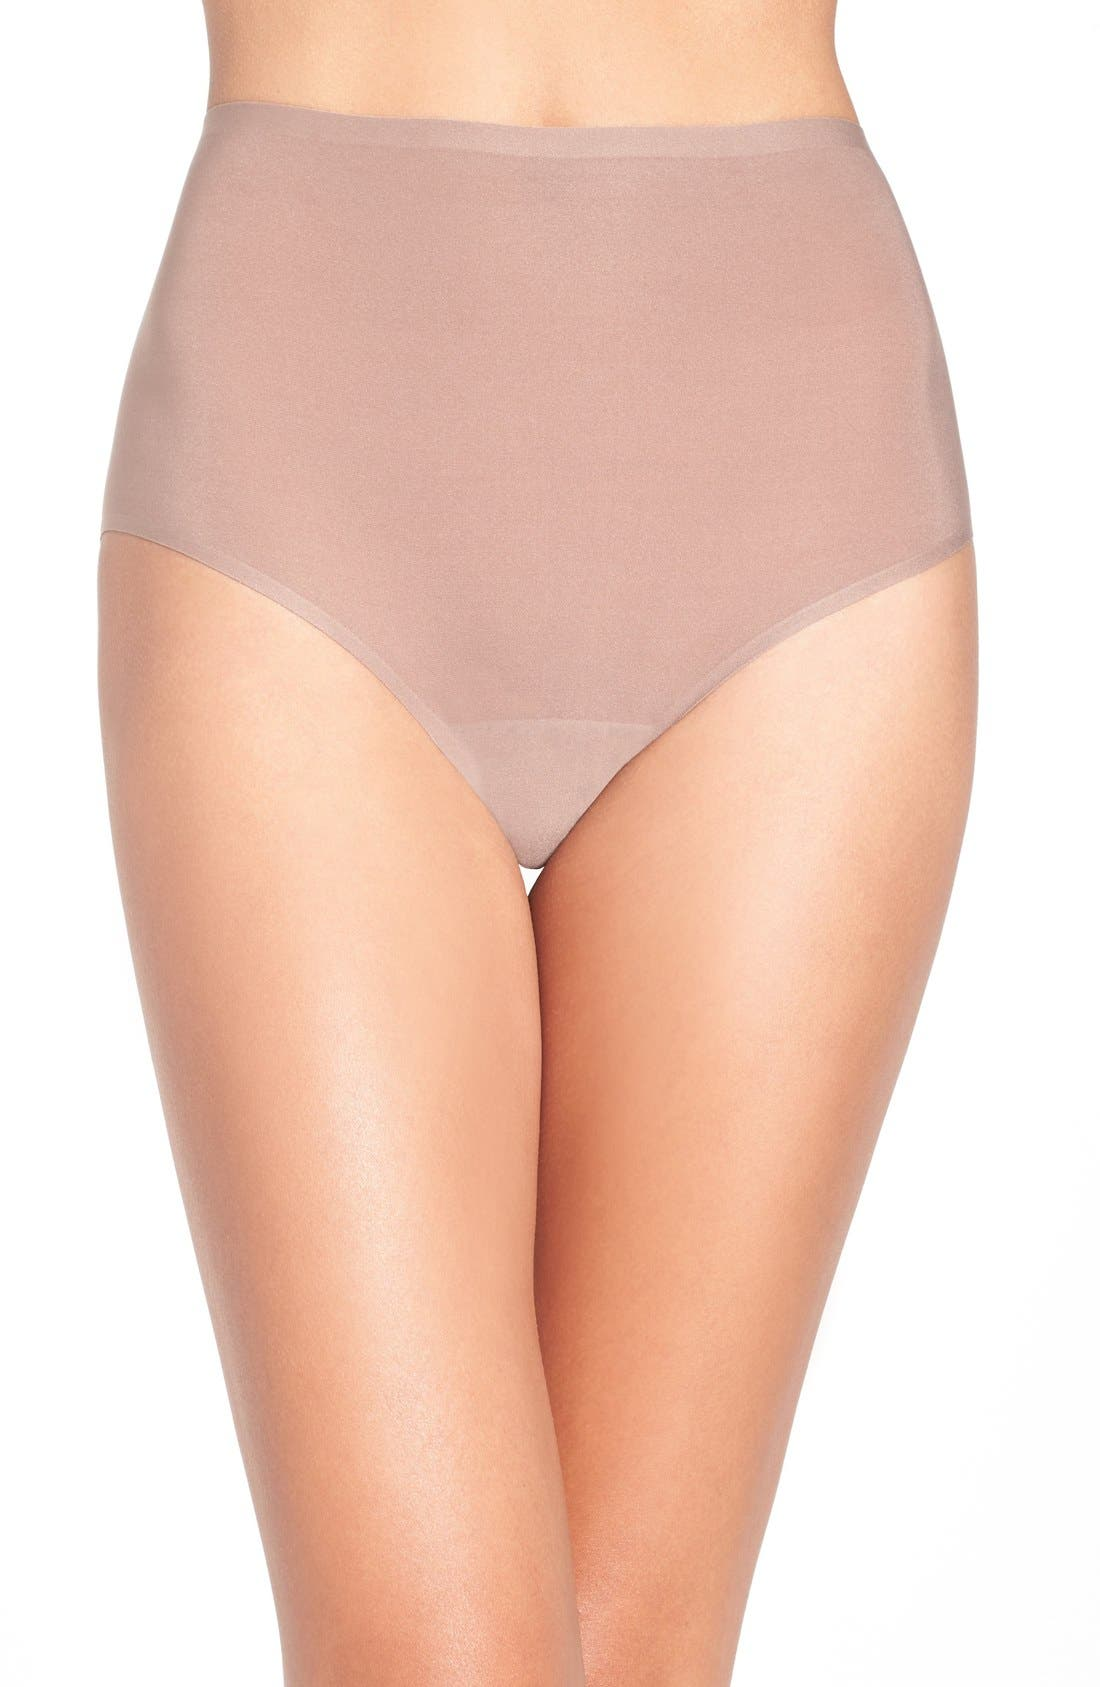 Chantelle Intimates High Waist Seamless Briefs (3 for $36)